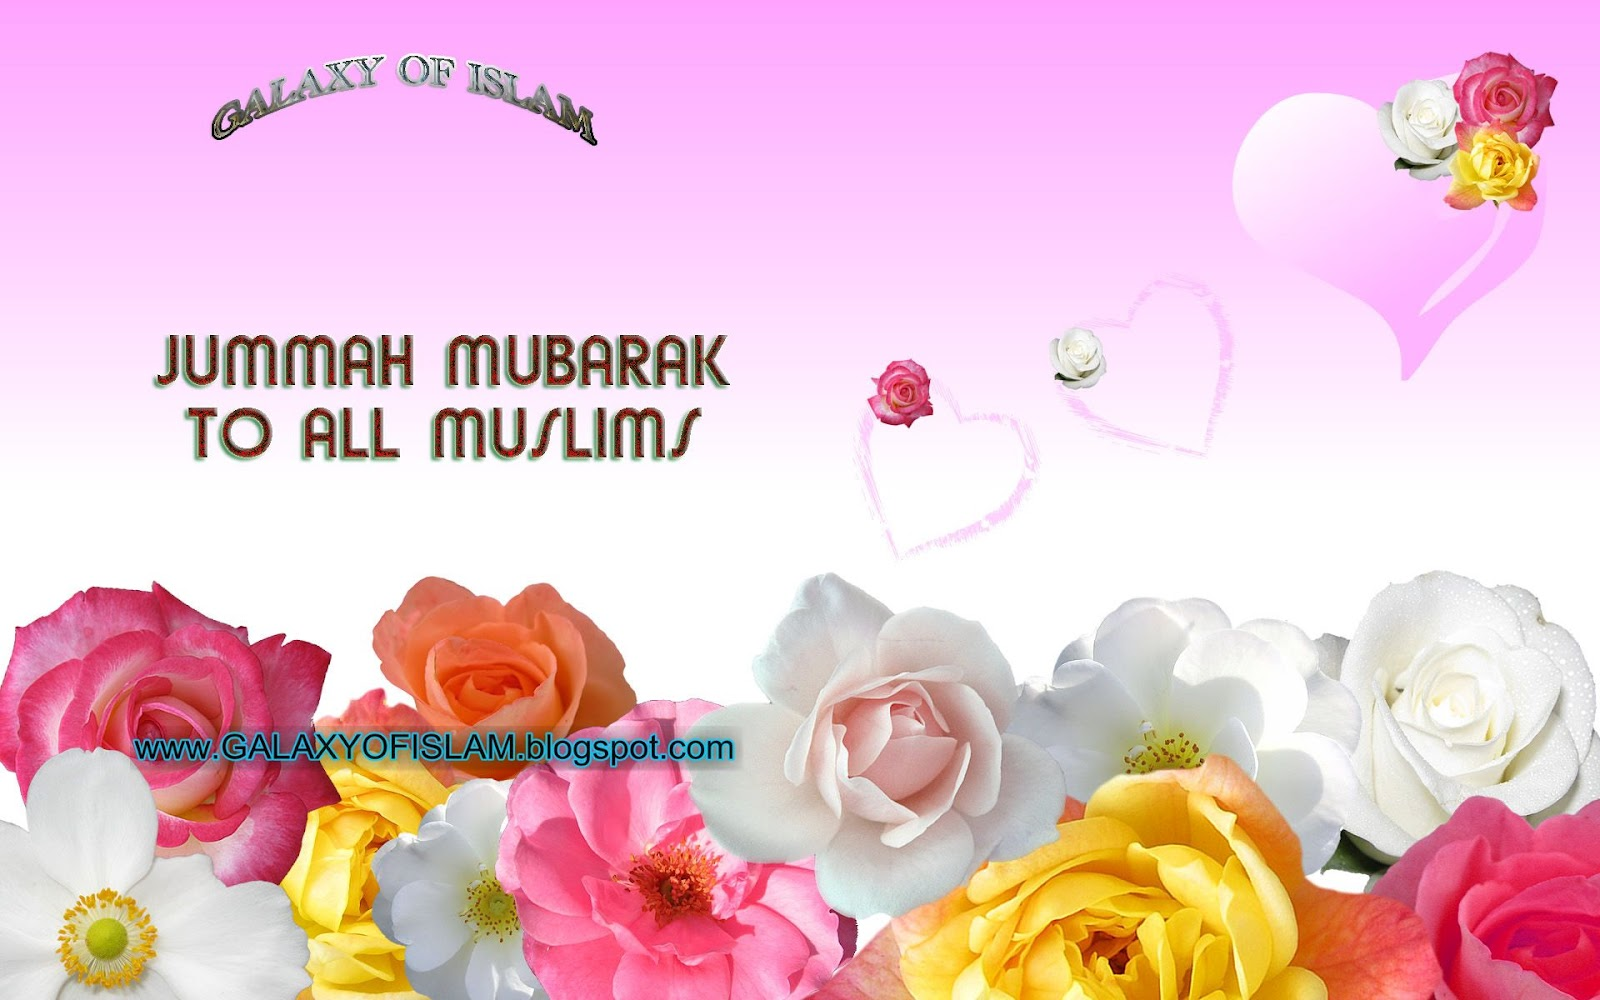 Jumma Mubarak Wallpapers Fb Facebook Pictures Quotes - quotepaty.com